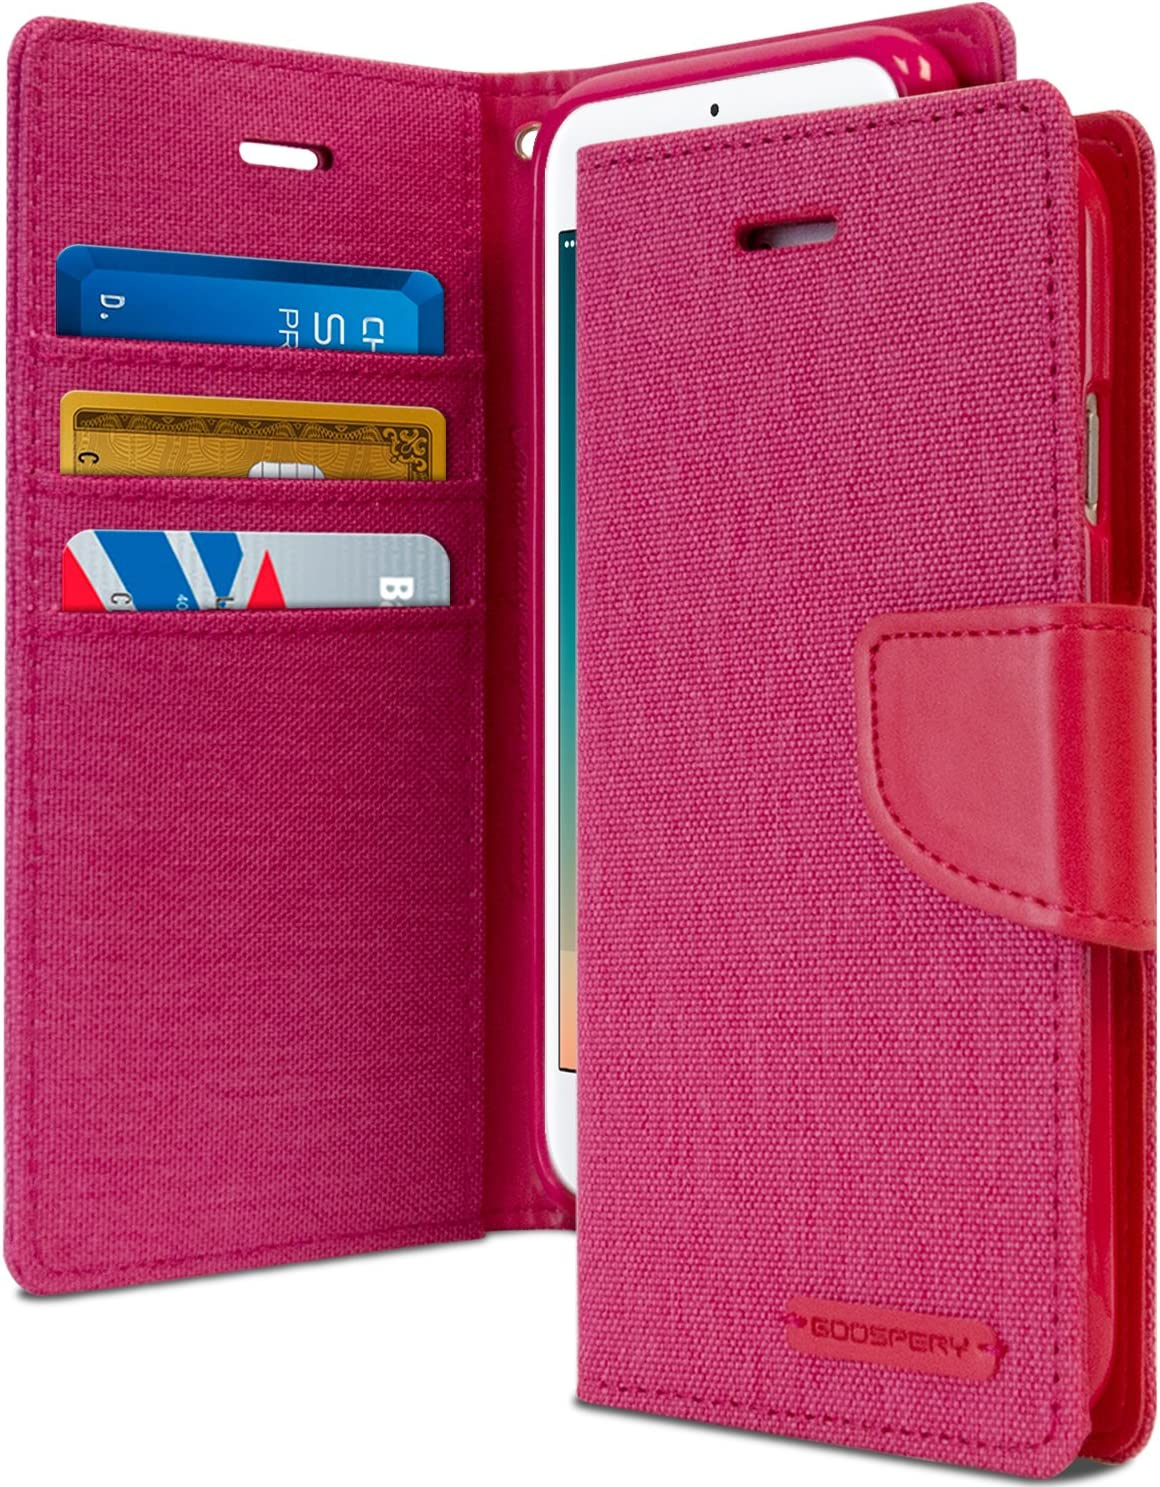 Goospery Canvas Wallet for Apple iPhone 8 Plus Case (2017) iPhone 7 Plus Case (2016) Denim Stand Flip Cover (Pink) IP7P-CAN-PNK